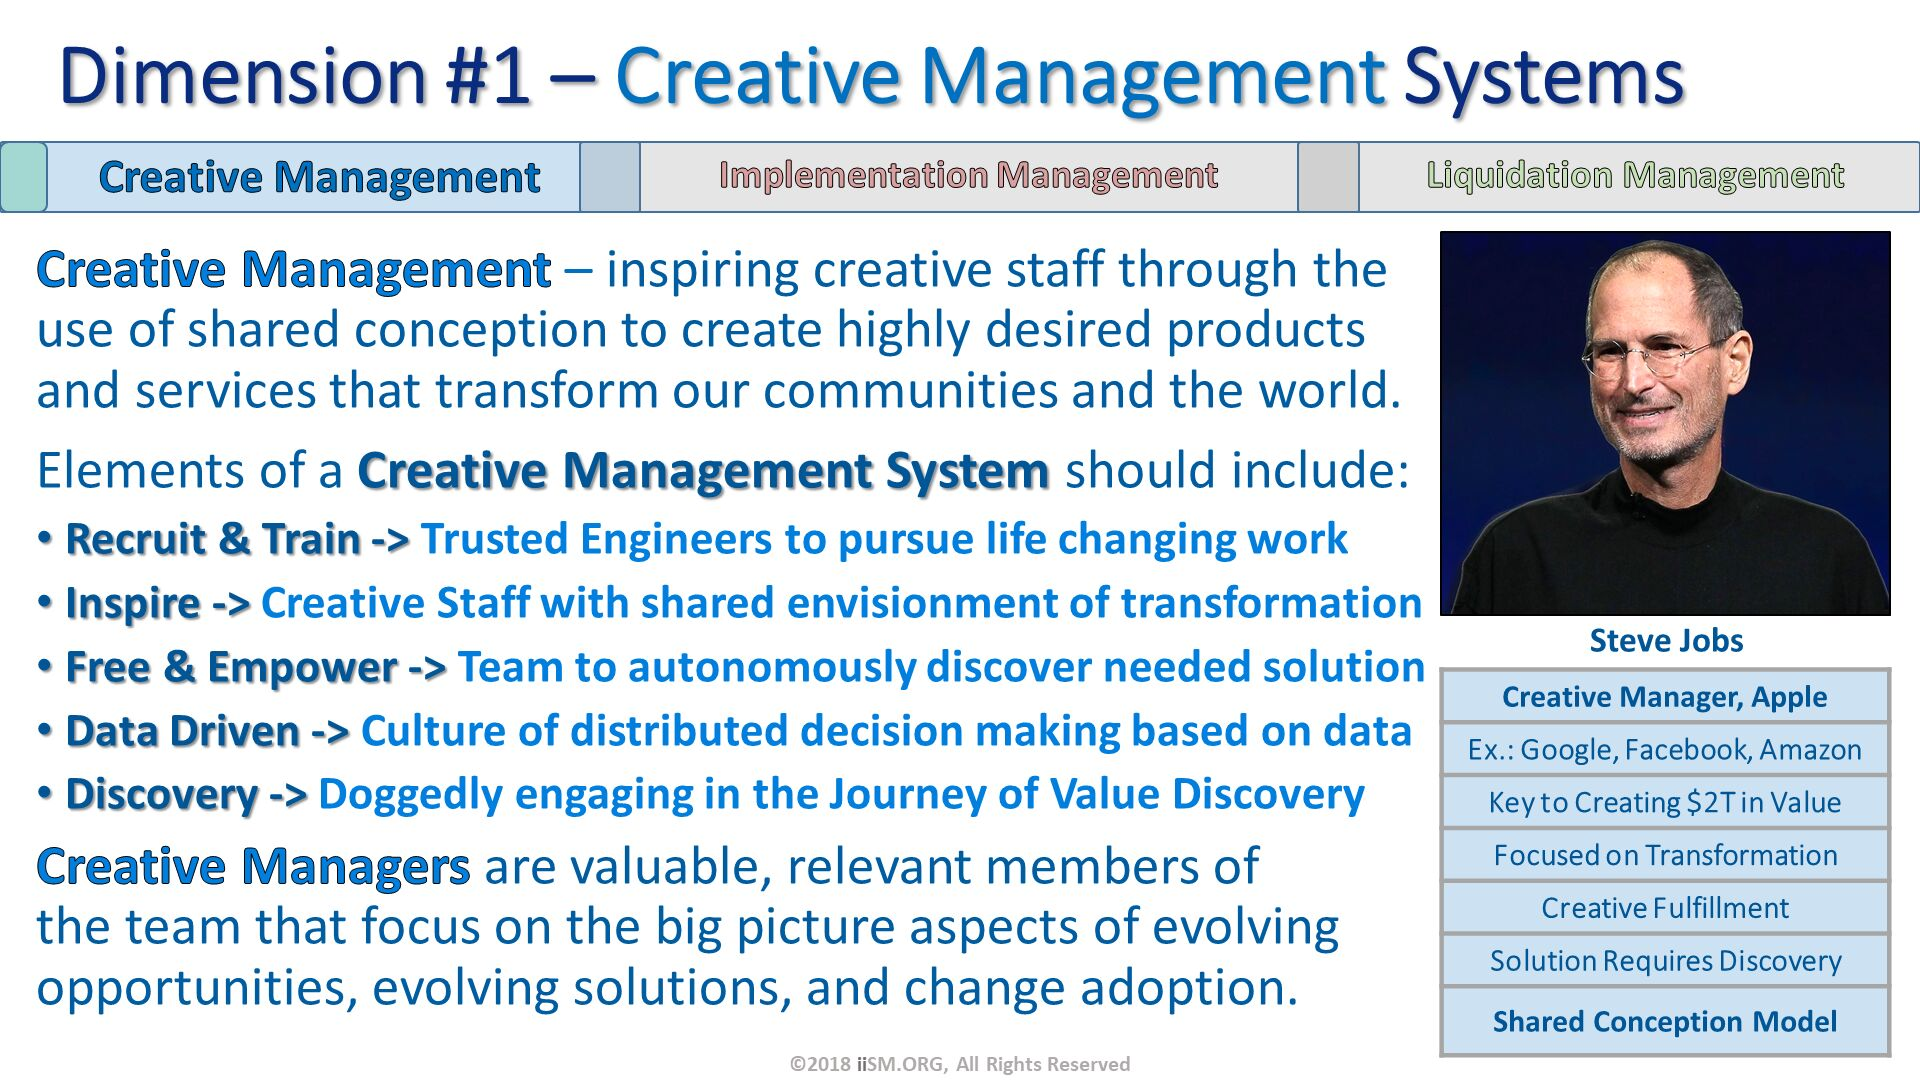 Creative Management – inspiring creative staff through the use of shared conception to create highly desired products and services that transform our communities and the world. Elements of a Creative Management System should include: Recruit & Train -> Trusted Engineers to pursue life changing work Inspire -> Creative Staff with shared envisionment of transformation Free & Empower -> Team to autonomously discover needed solution Data Driven -> Culture of distributed decision making based on data  Discovery -> Doggedly engaging in the Journey of Value Discovery Creative Managers are valuable, relevant members of the team that focus on the big picture aspects of evolving opportunities, evolving solutions, and change adoption. Dimension #1 – Creative Management Systems. Steve Jobs. ©2018 iiSM.ORG, All Rights Reserved.